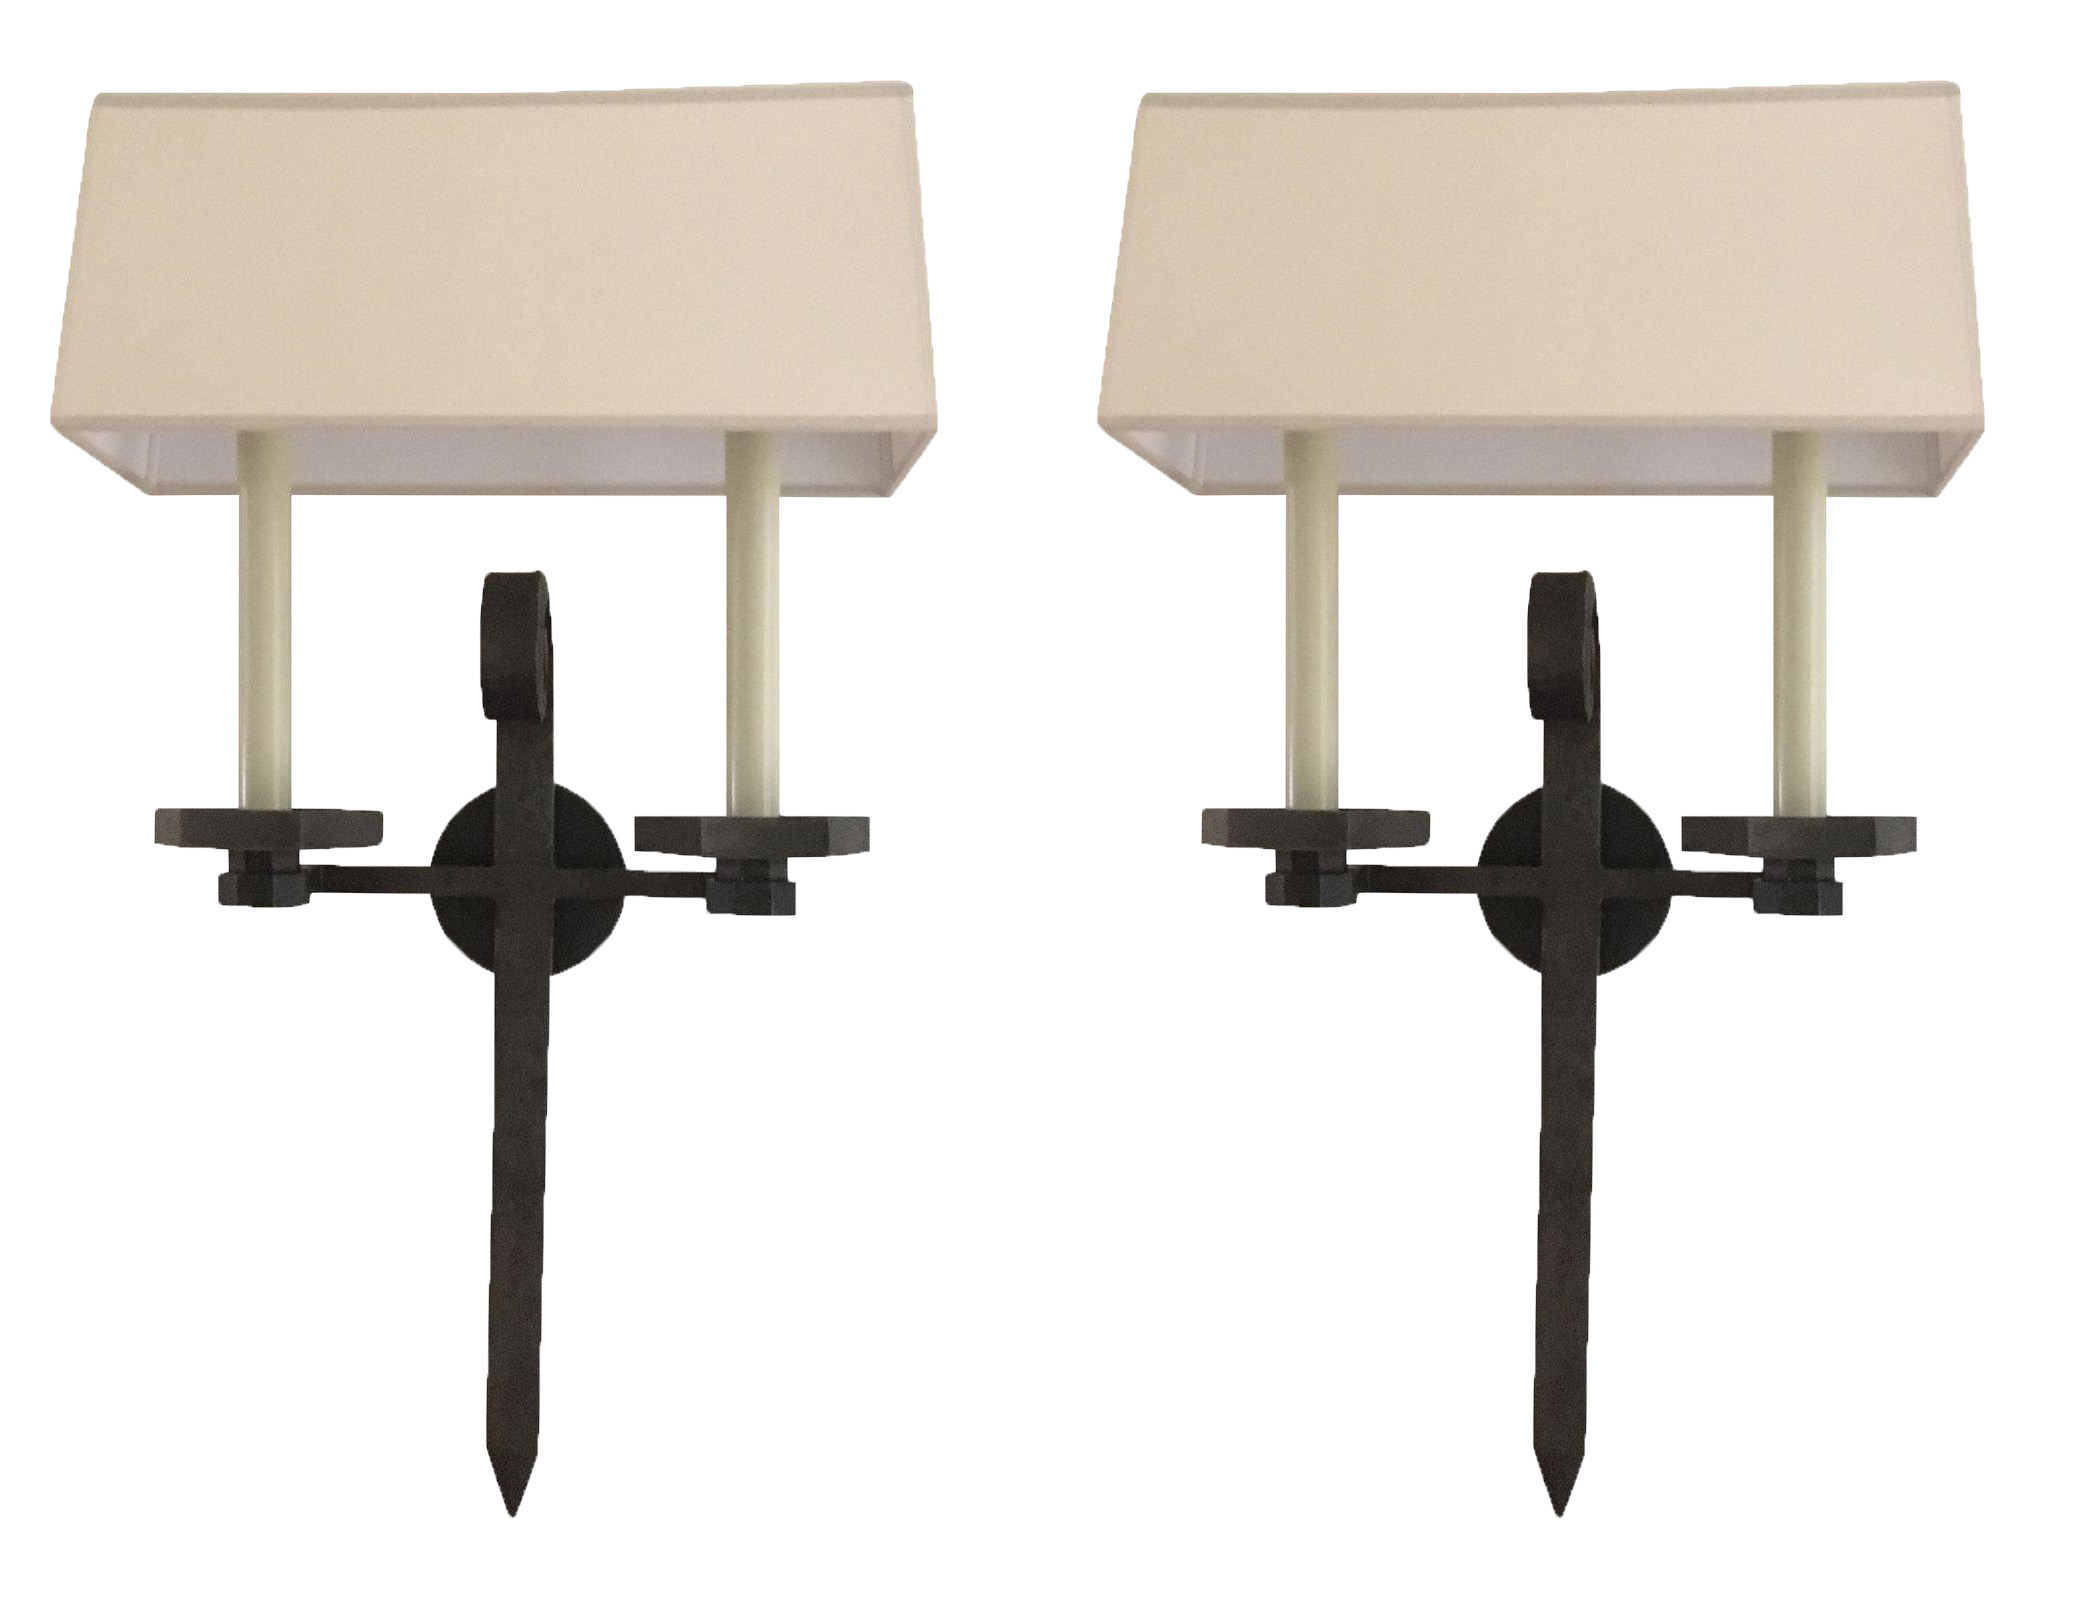 Visual Comfort Iron Wall Sconces - Pair  sc 1 st  Chairish & Visual Comfort Iron Wall Sconces - Pair | Chairish